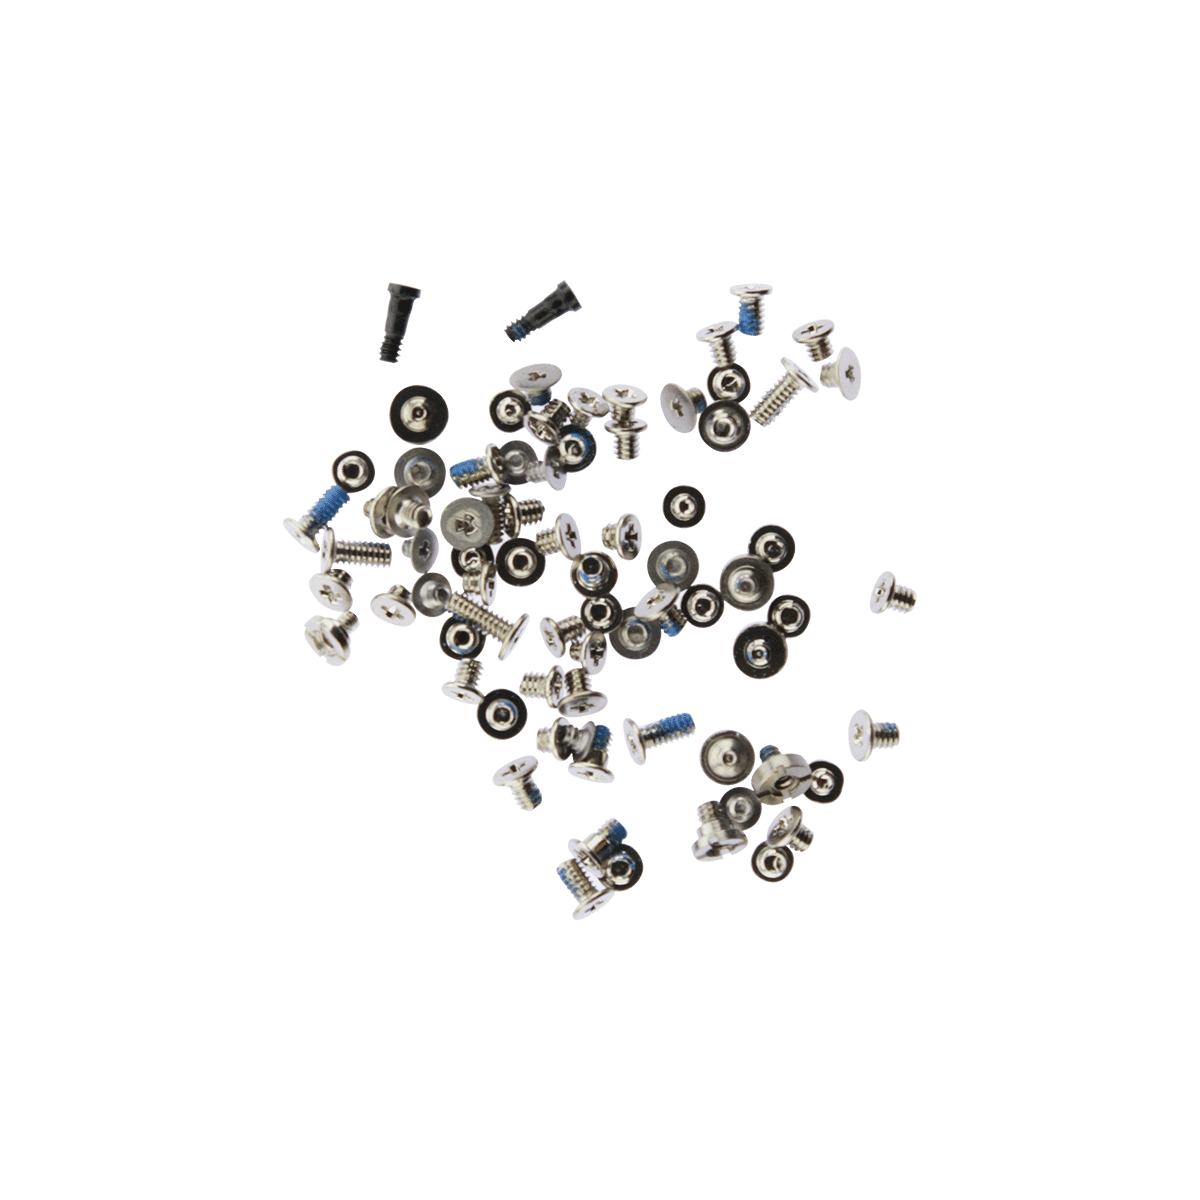 iPhone 7 Plus Complete Screw Set